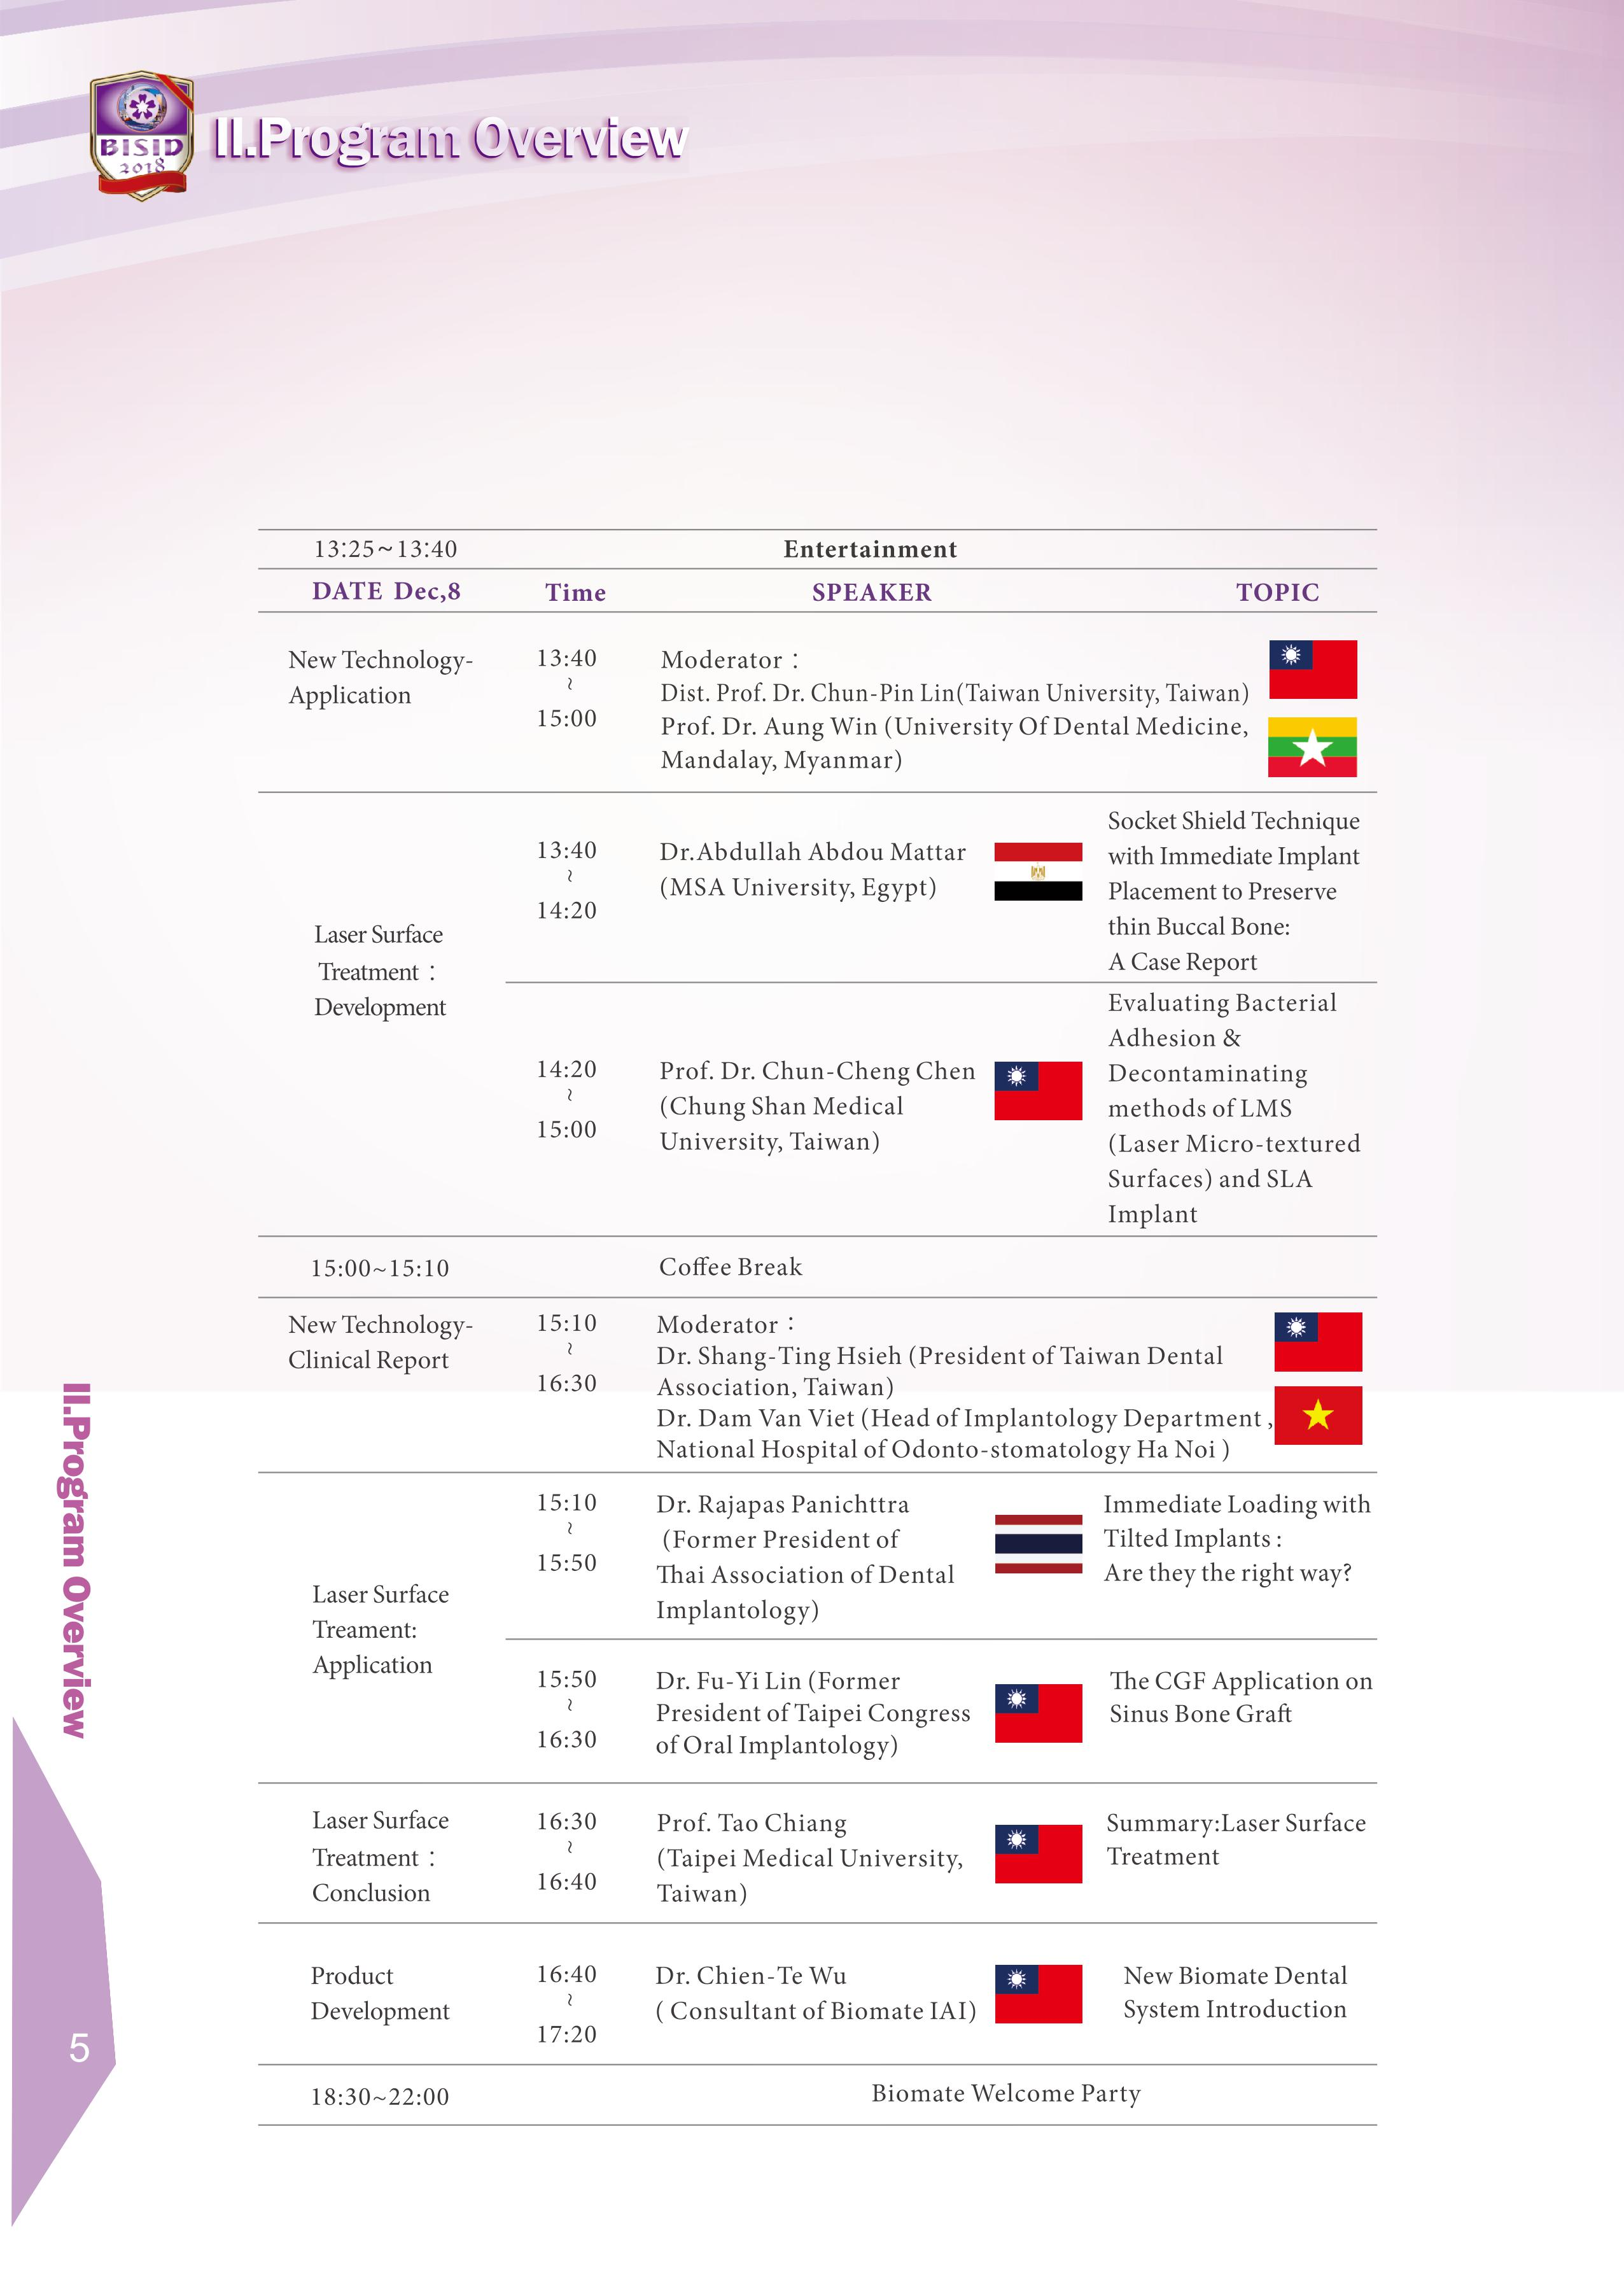 Biomate Internation Symposium of Implant Dentistry